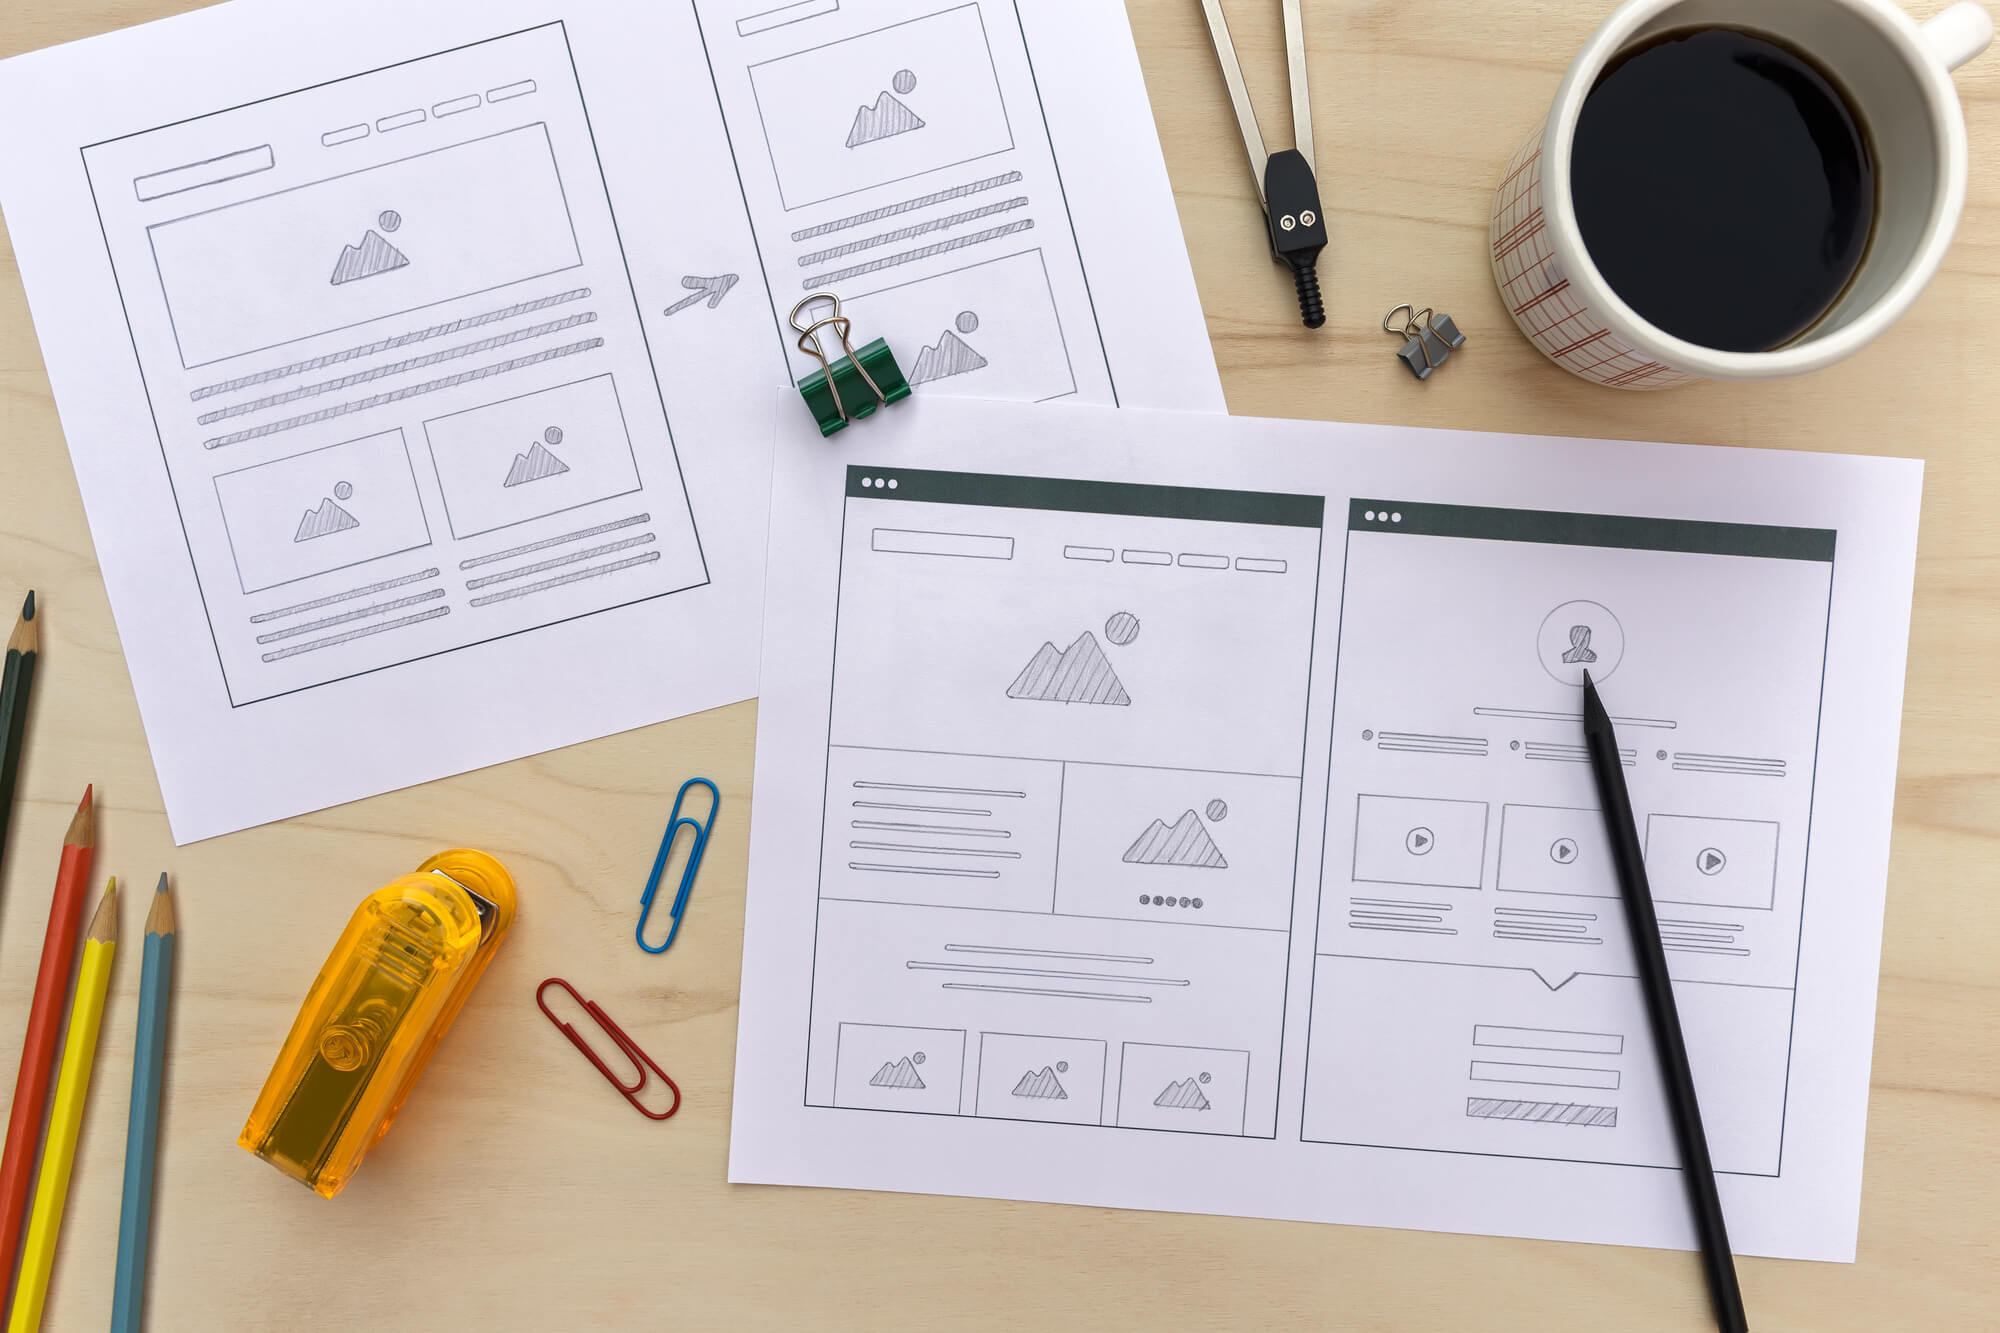 What Is a Wireframe? The Top Way to Design Your Moving Company Website